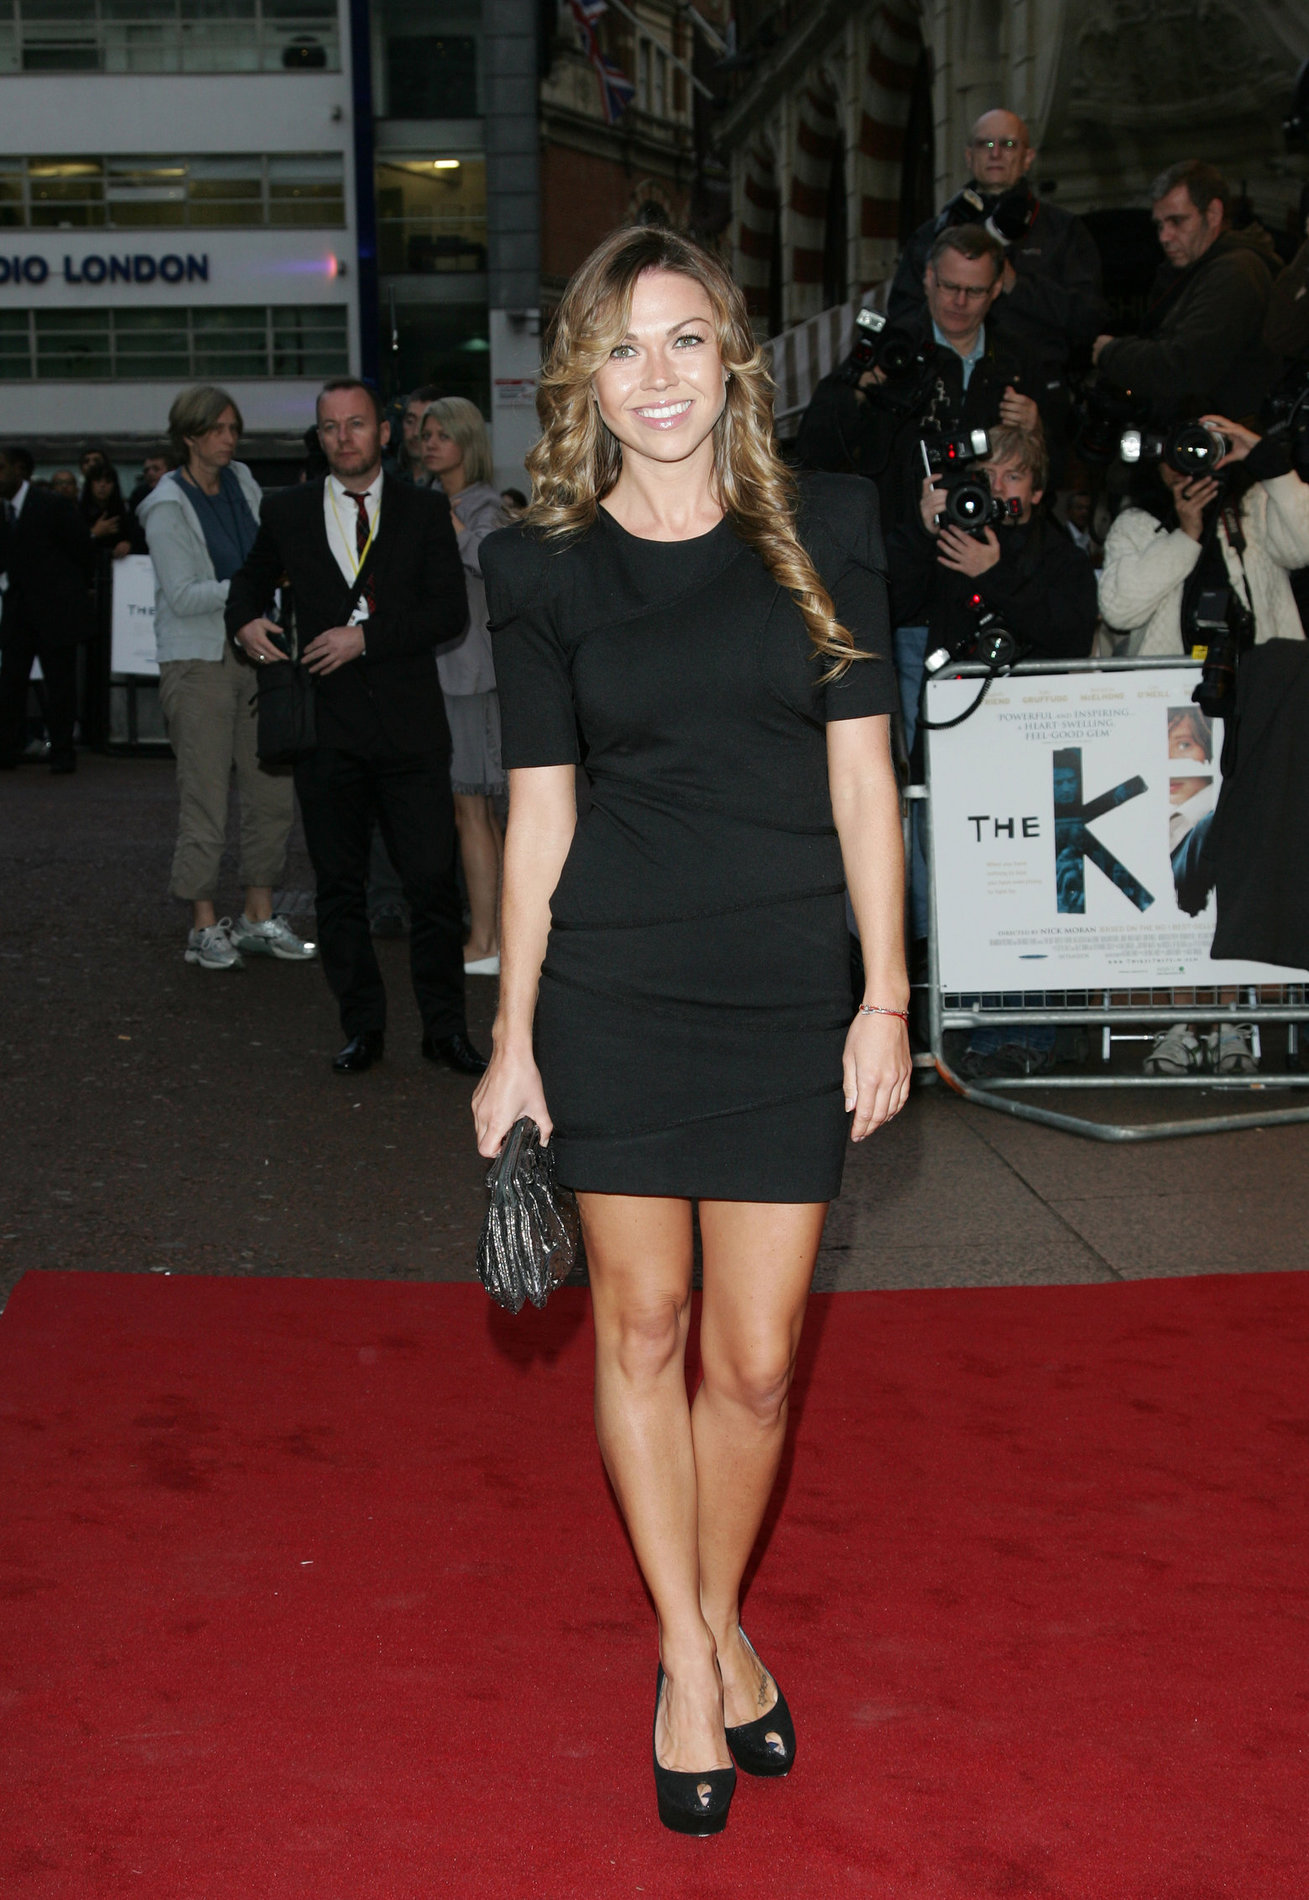 Adele Silva at The Kid premiere in London on September 15, 2010